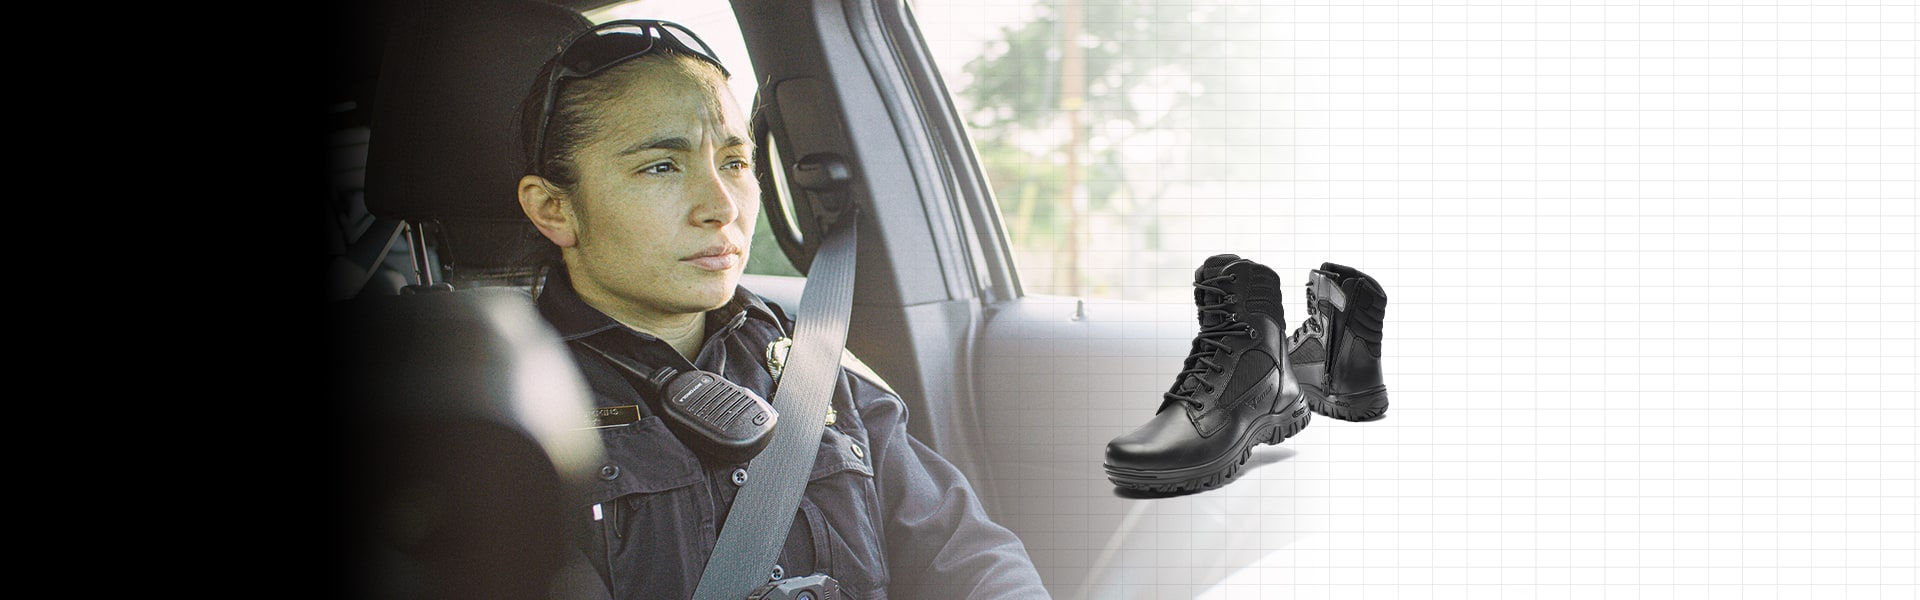 Woman on patrol and a pair of the new Cyren boots.